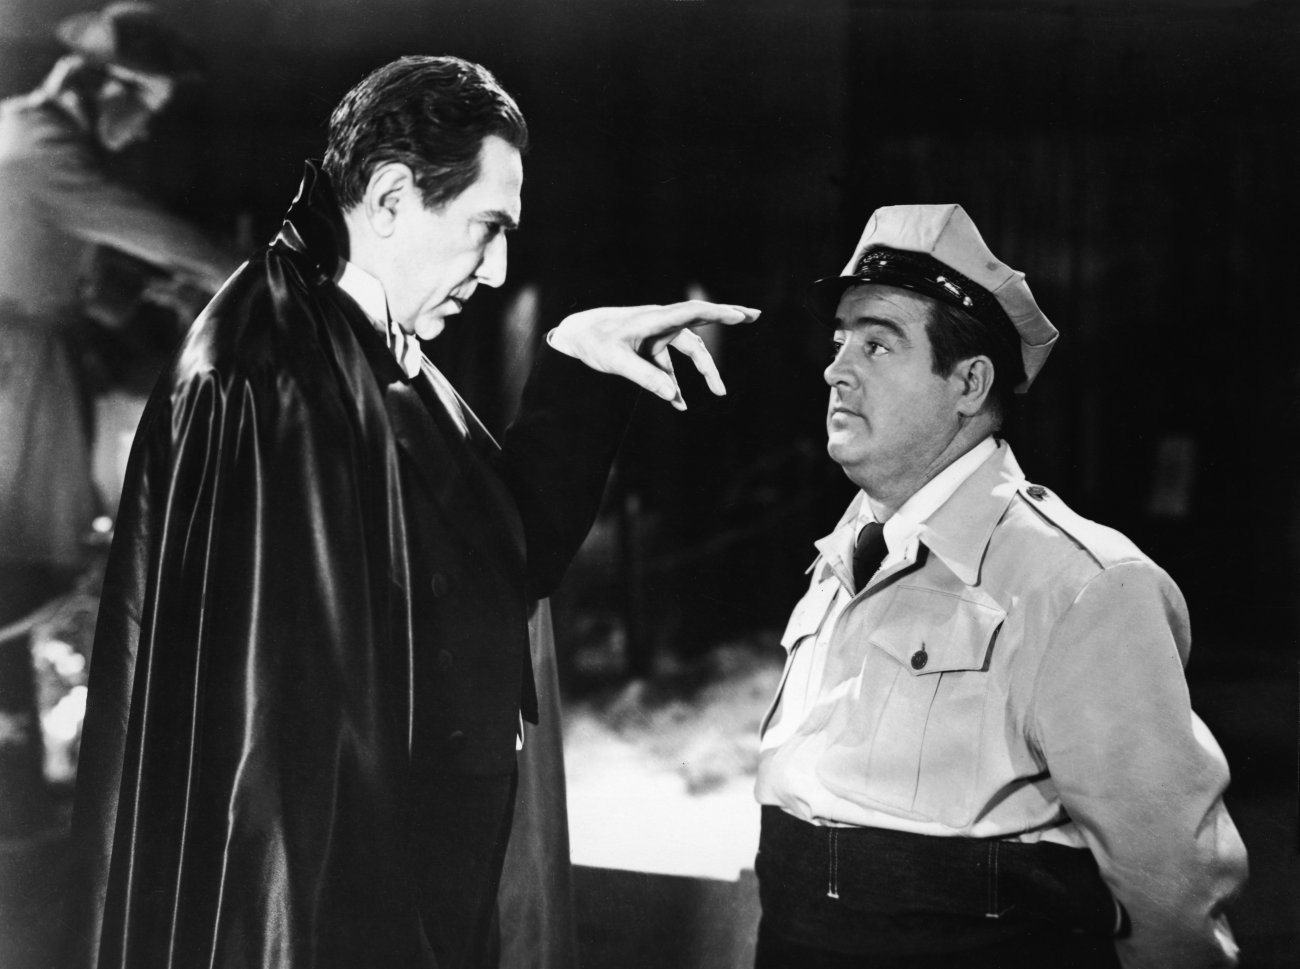 Count Dracula (Bela Lugosi) hypnotises Lou Costello in Abbott and Costello Meet Frankenstein (1948)